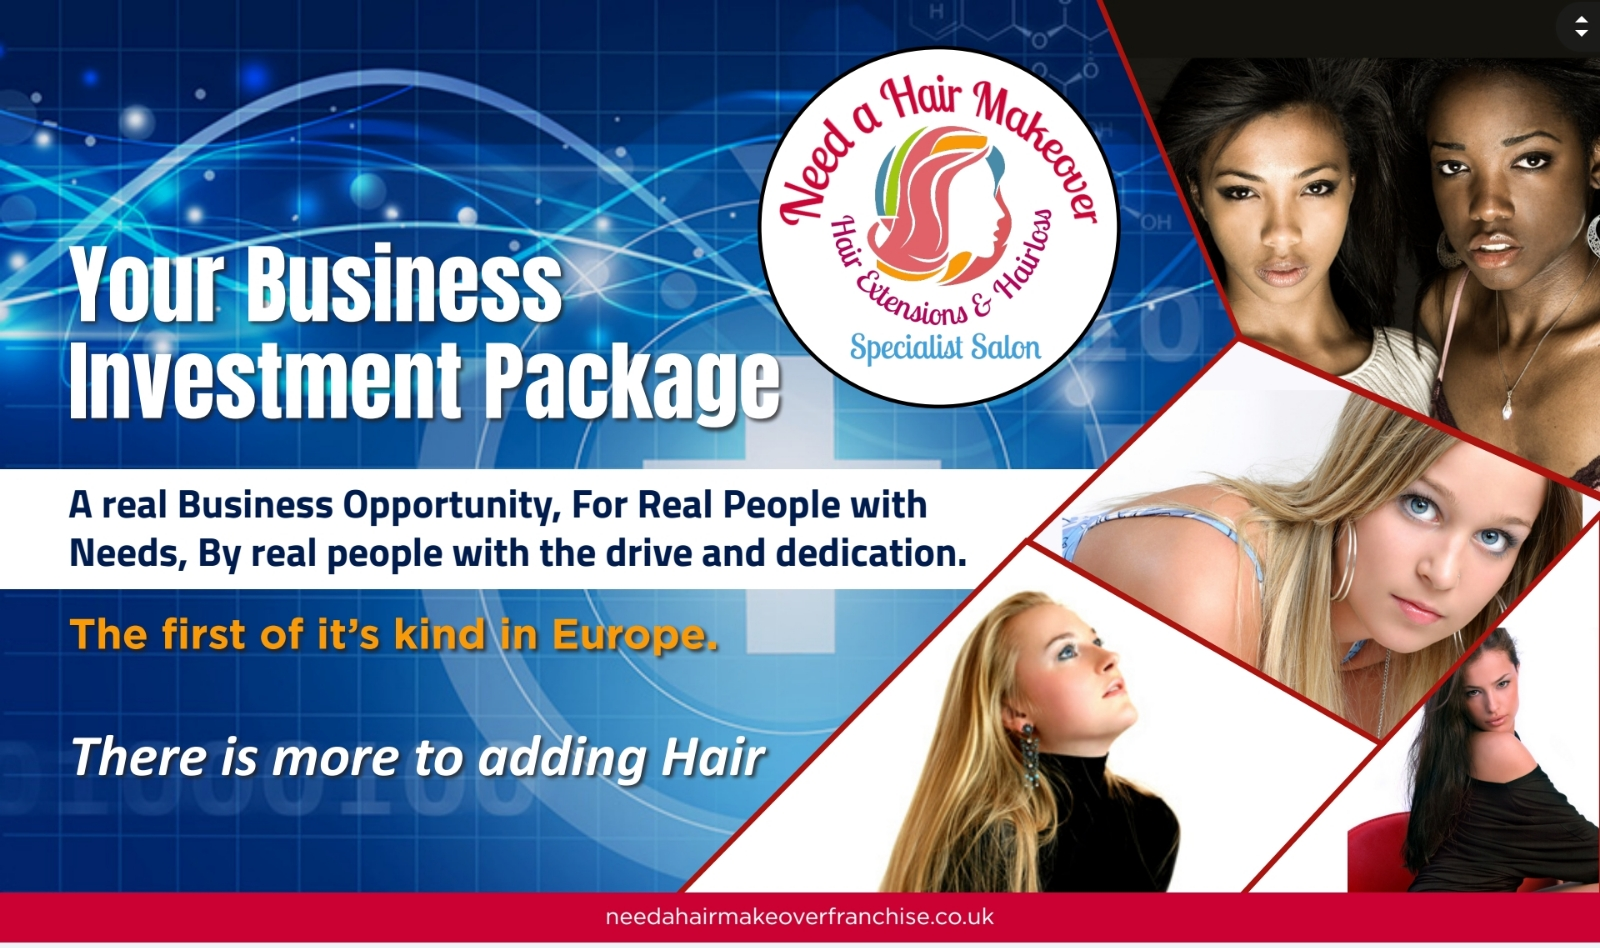 Hair extensions and hair loss franchise opportunity